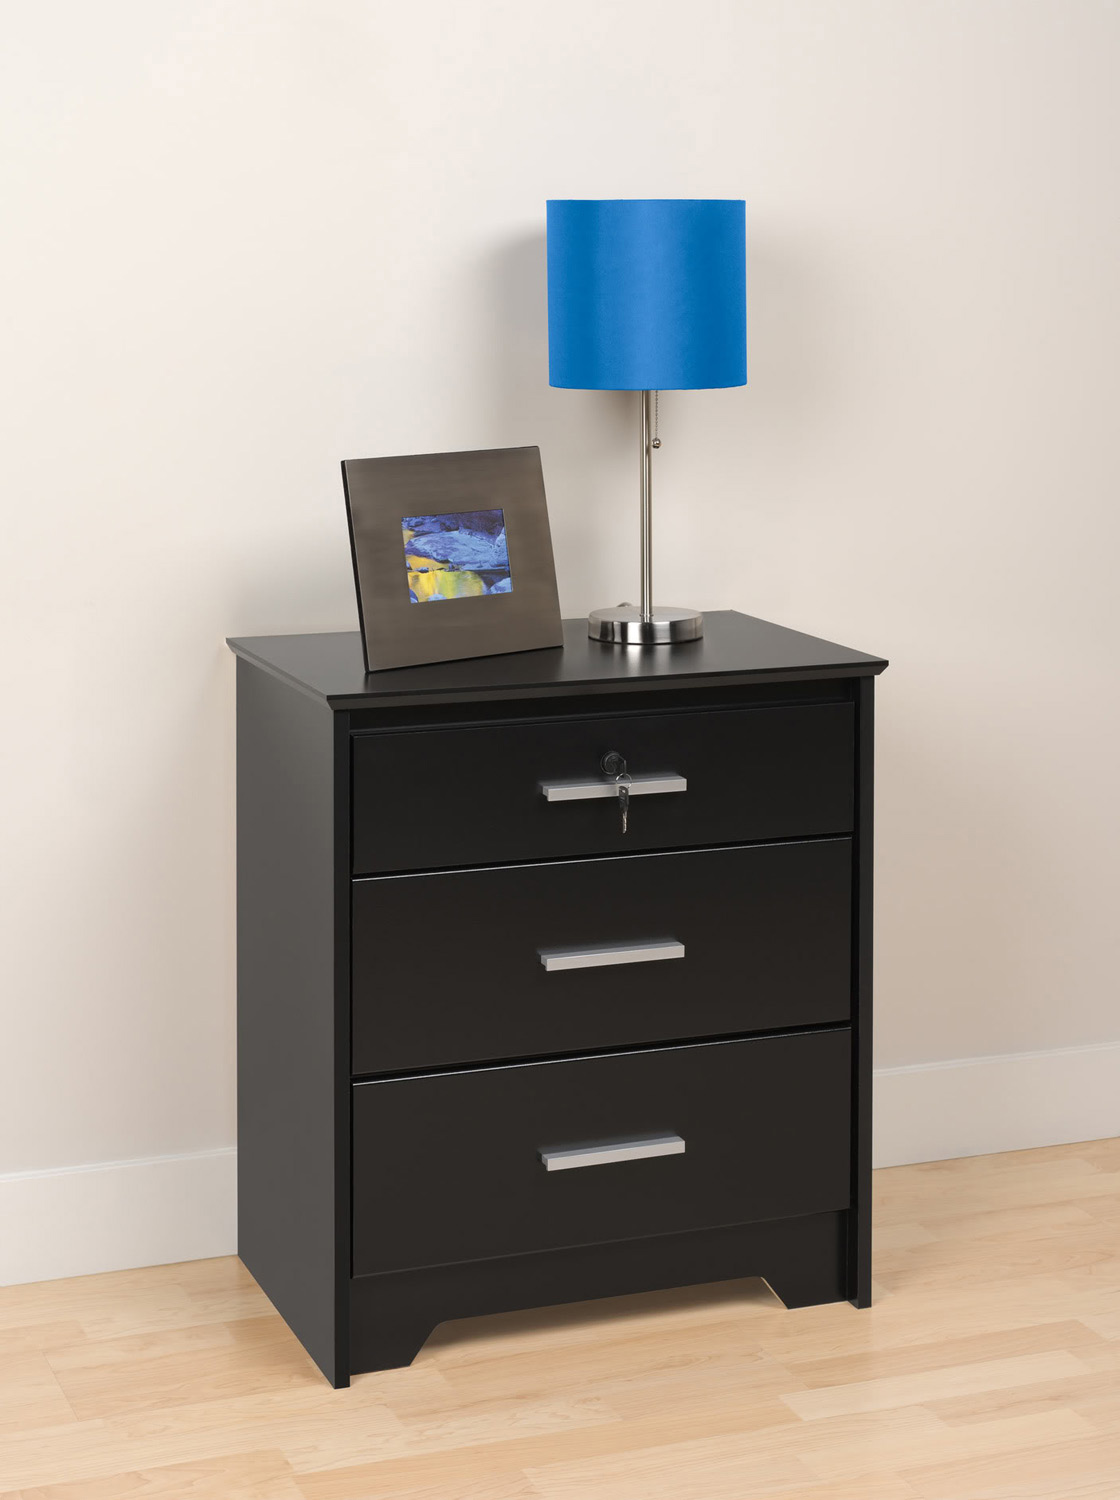 Prepac Coal Harbor 3 Drawer Tall & Wide Night Stand with Lock - Black